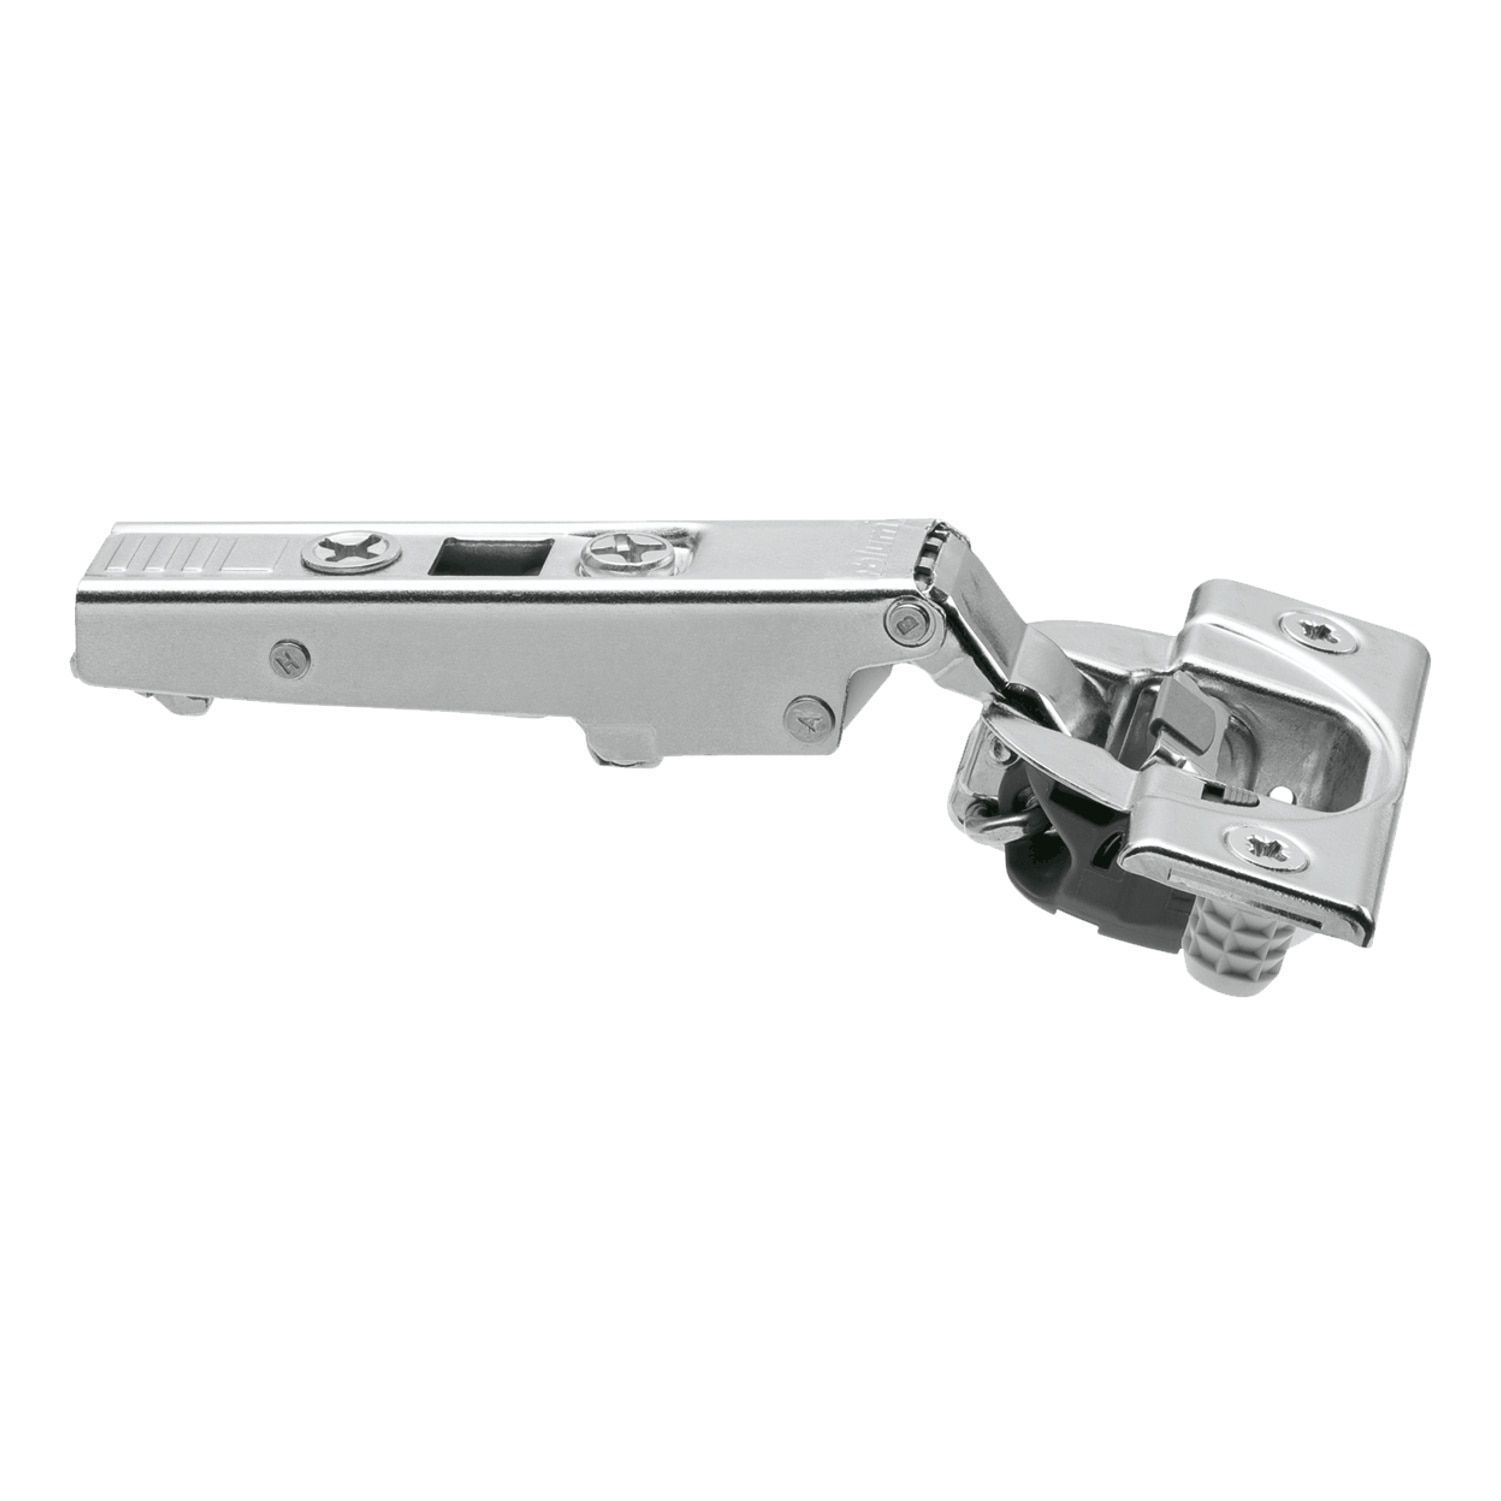 110 Degree Straight Arm Clip Top Blumotion Press In Soft Close Cabinet Hinge Pack Of 5 Hinges For Cabinets Soft Closing Hinges Things To Sell